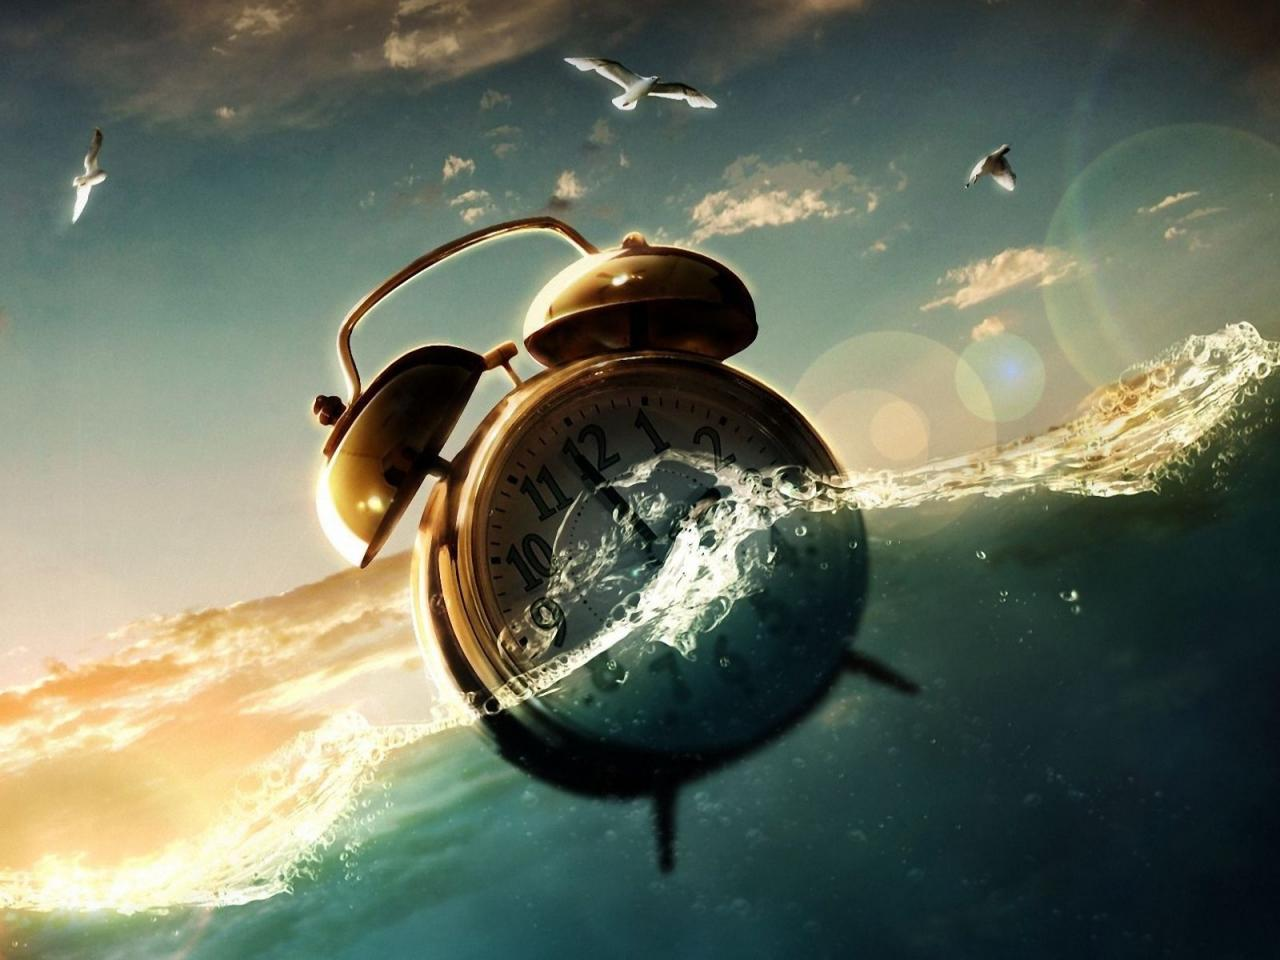 alarm-clock-water-fantasy-design-creative-960x1280.jpg